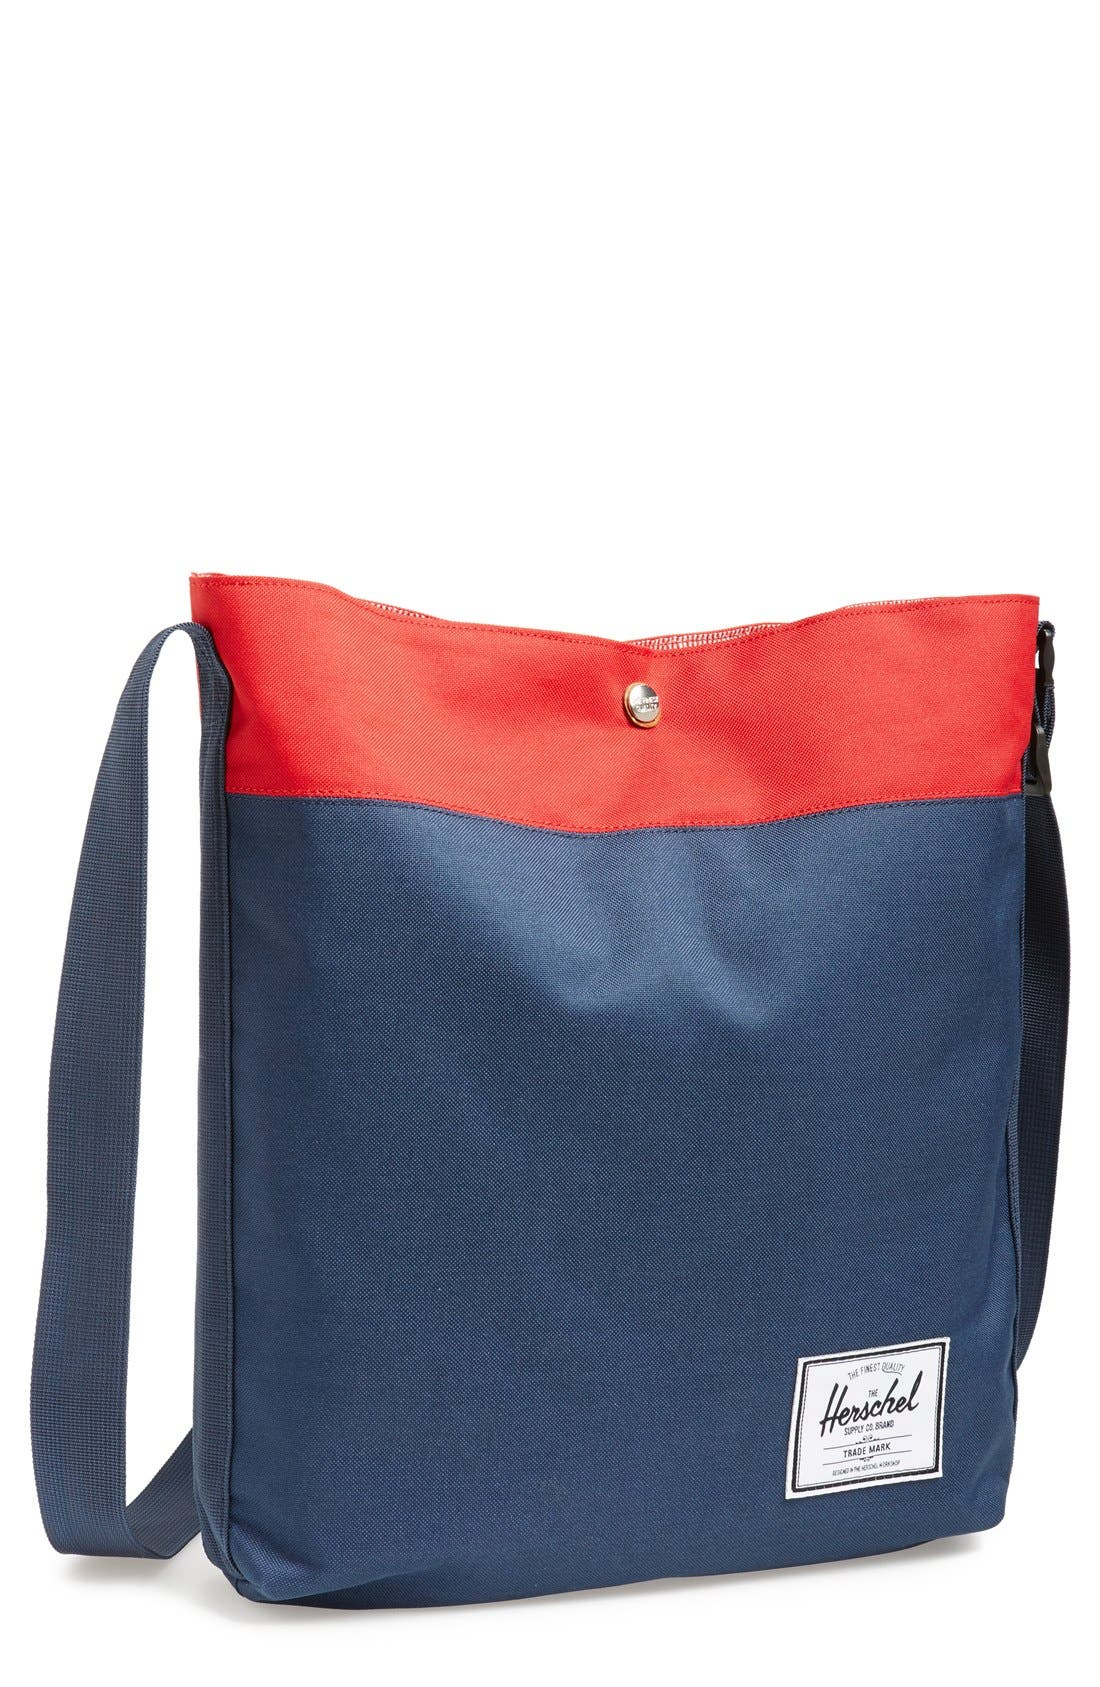 Main Image - Herschel Supply Co. 'Ottawa' Tote Bag